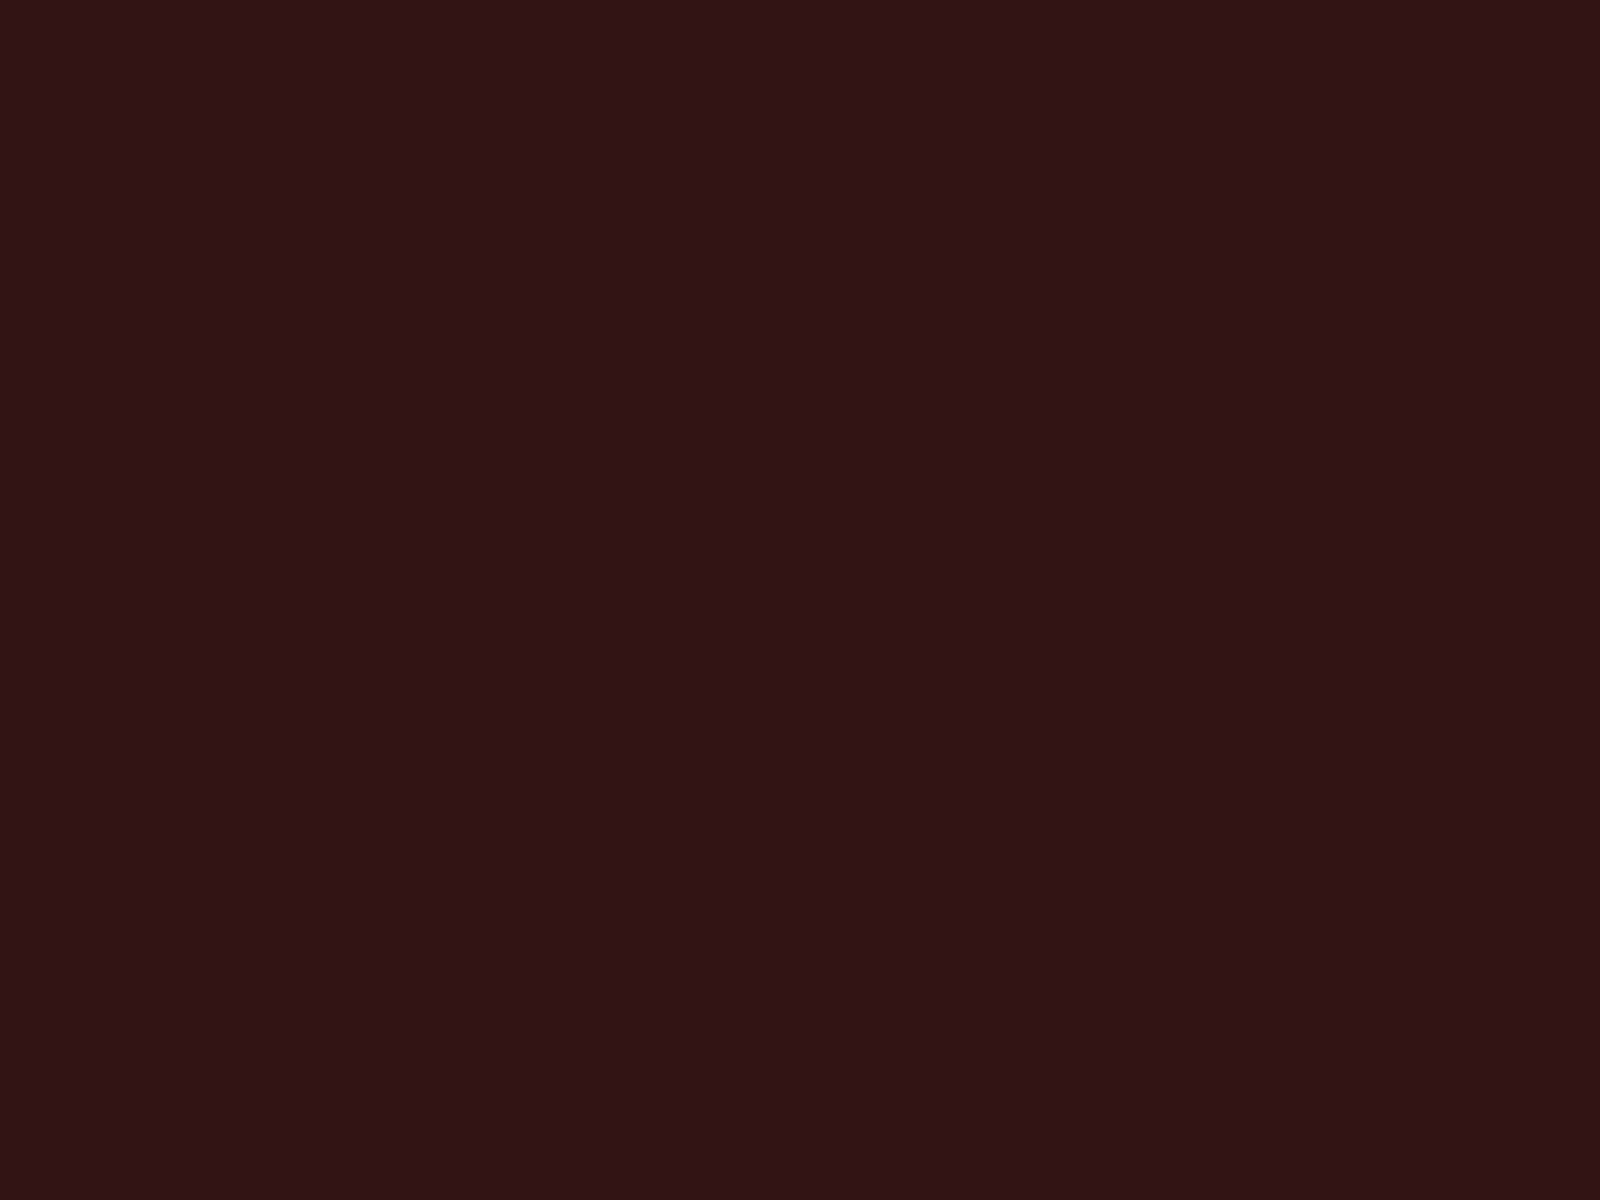 1600x1200 Seal Brown Solid Color Background